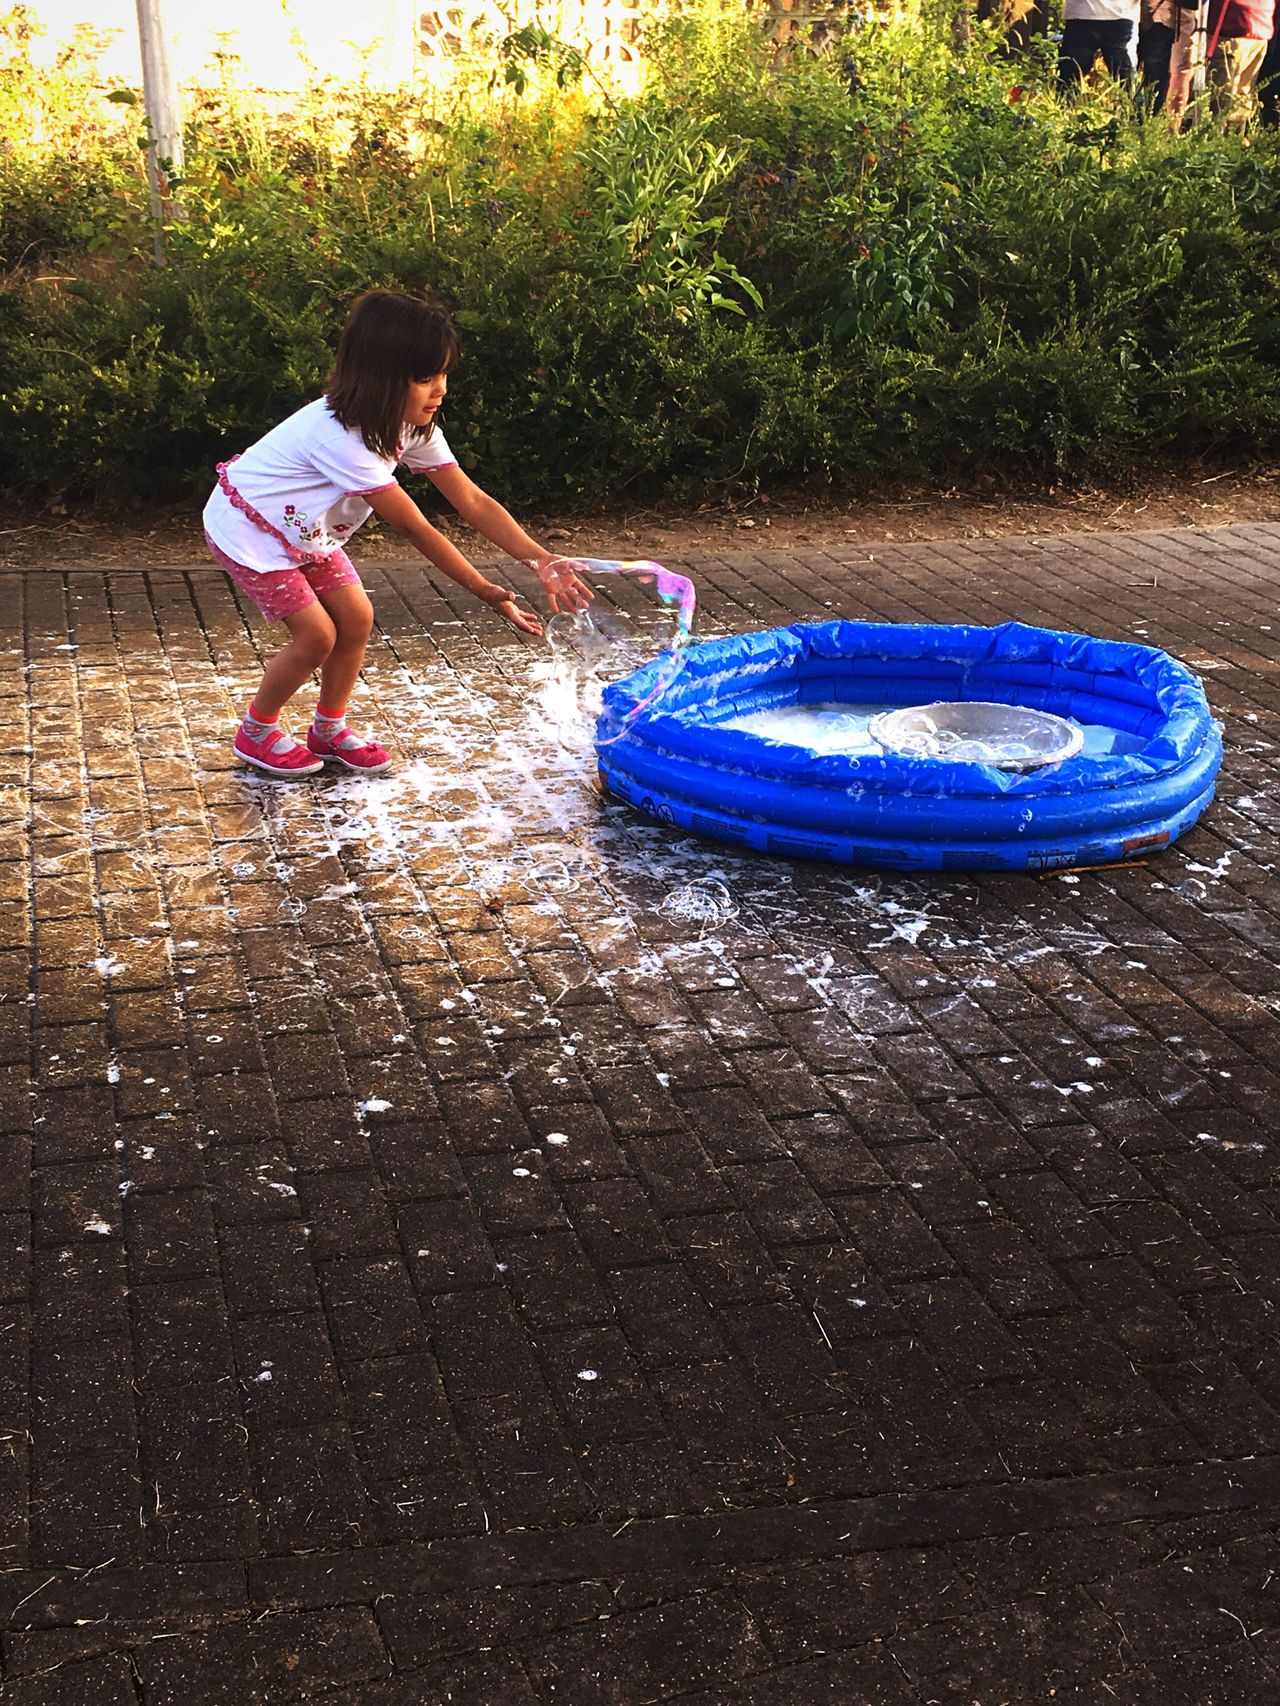 Young girl playing with a soap bubble from a small pool on the street Childhood One Person Full Length Water Garden Hose Casual Clothing Child Leisure Activity Real People Outdoors Playing People Day Dream Dreamcatcher Dreamer Daydreaming Daydream Lovely Great Atmosphere Kid Kids Being Kids Kids Having Fun Kids Playing Kidsphotography